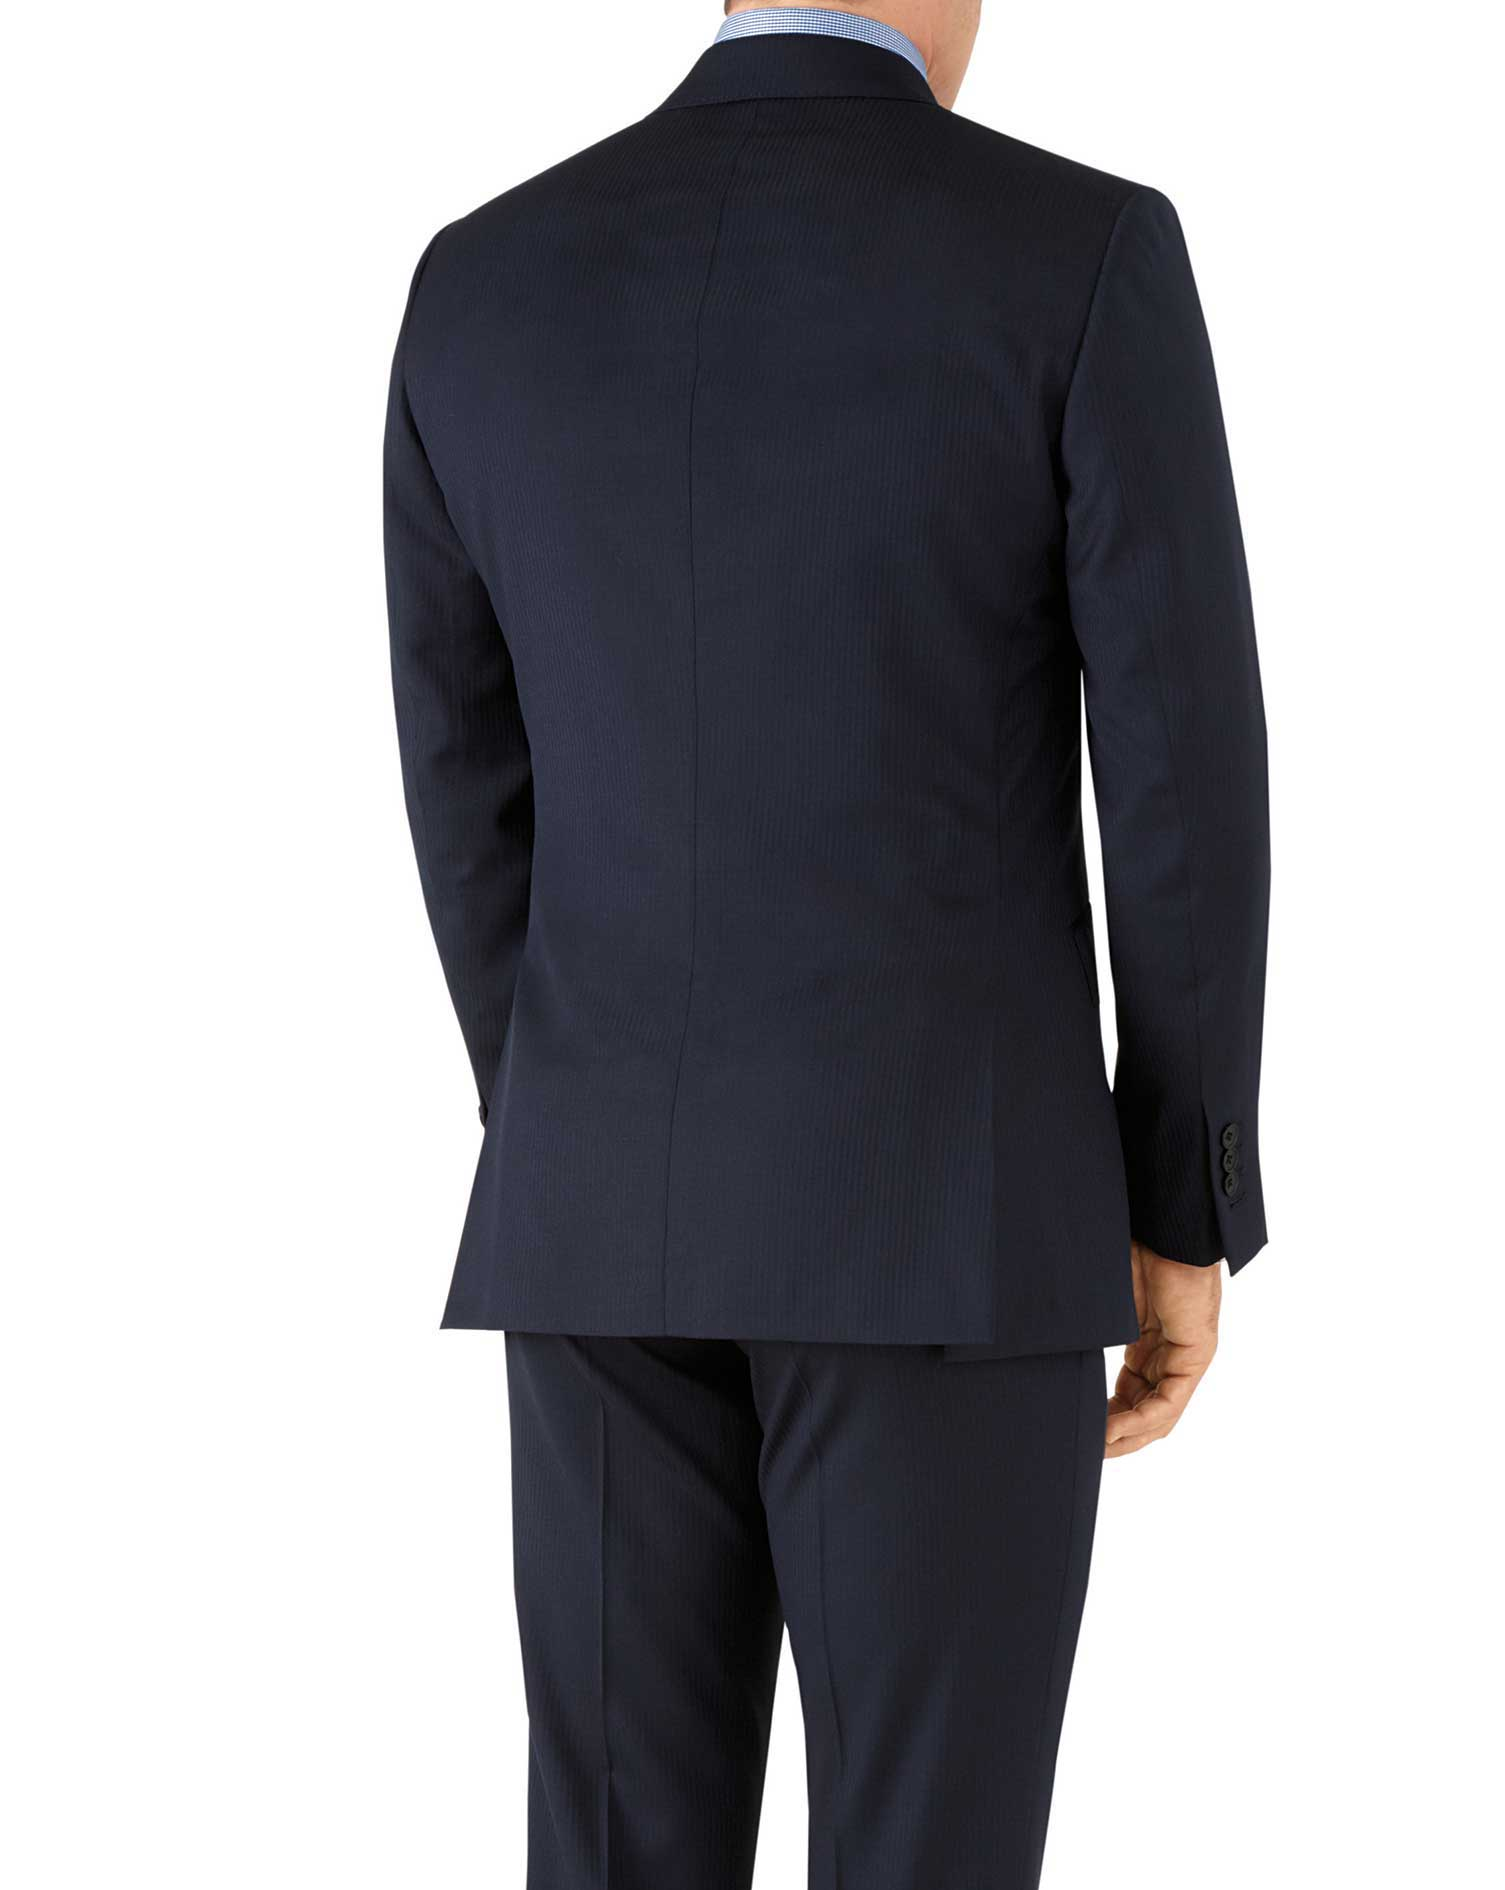 Navy herringbone classic fit Italian suit jacket